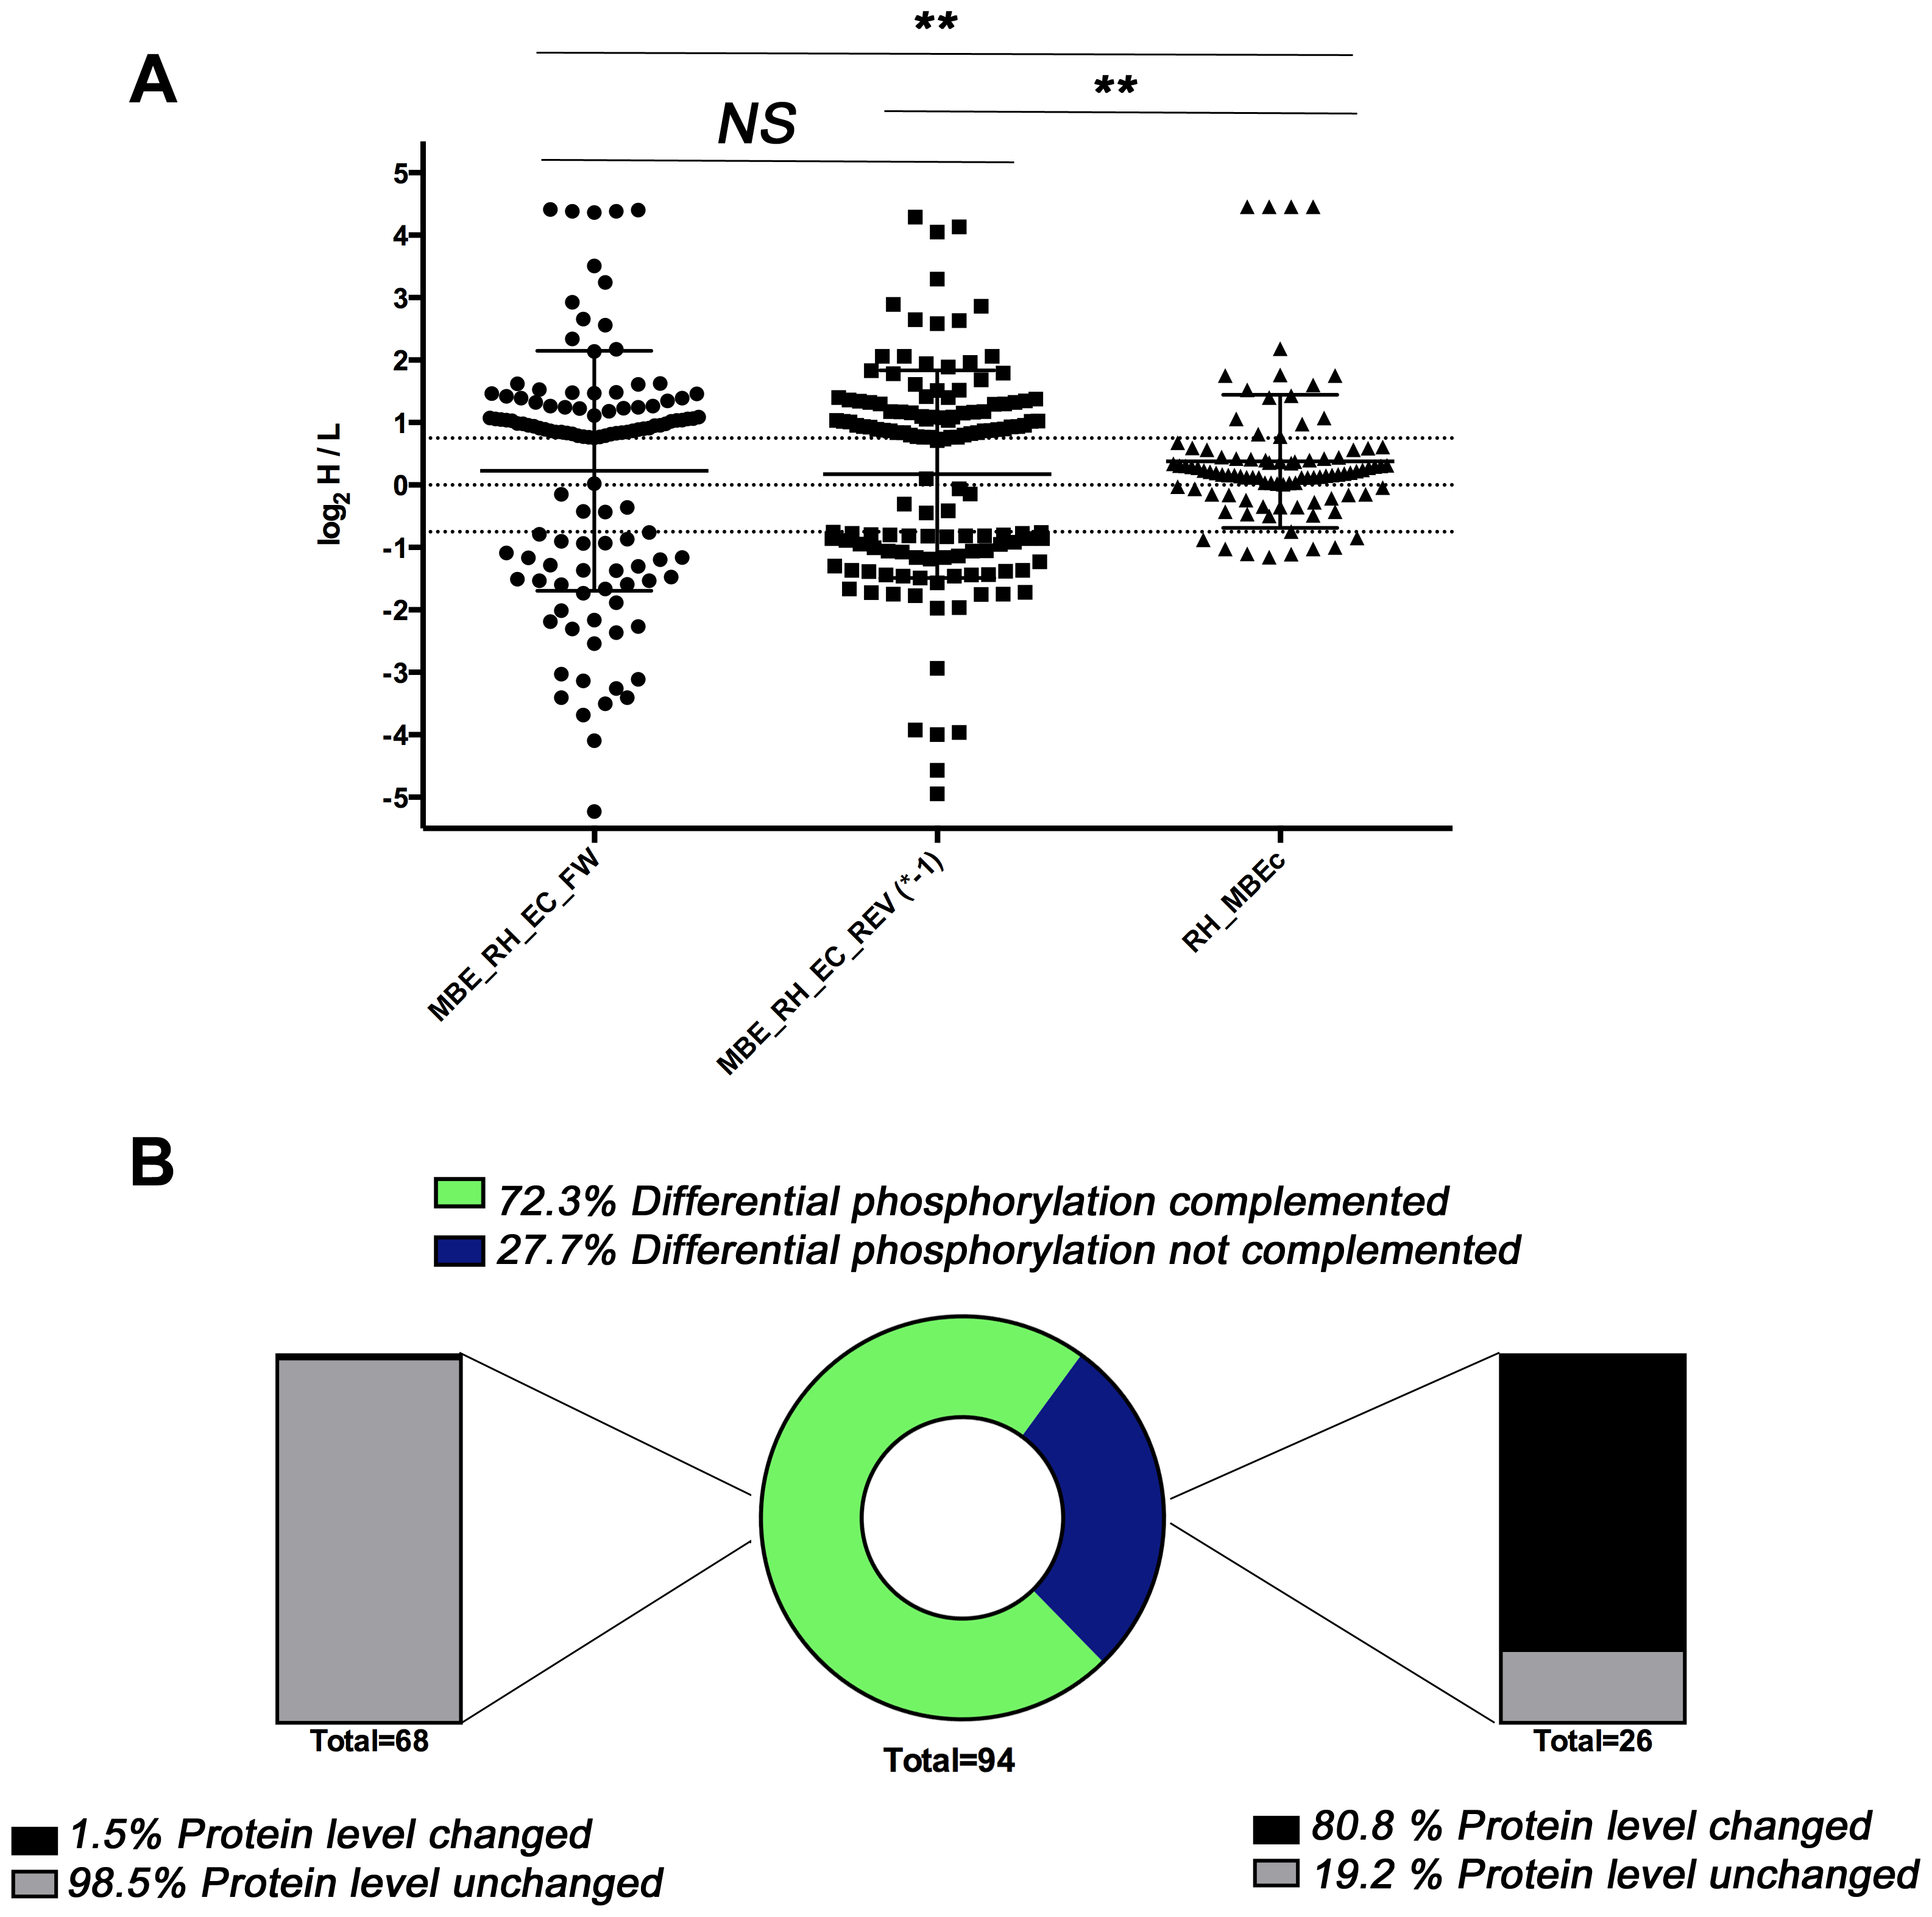 Phosphoproteome and proteome analysis of MBE1.1 complemented with wild type TgCDPK3.